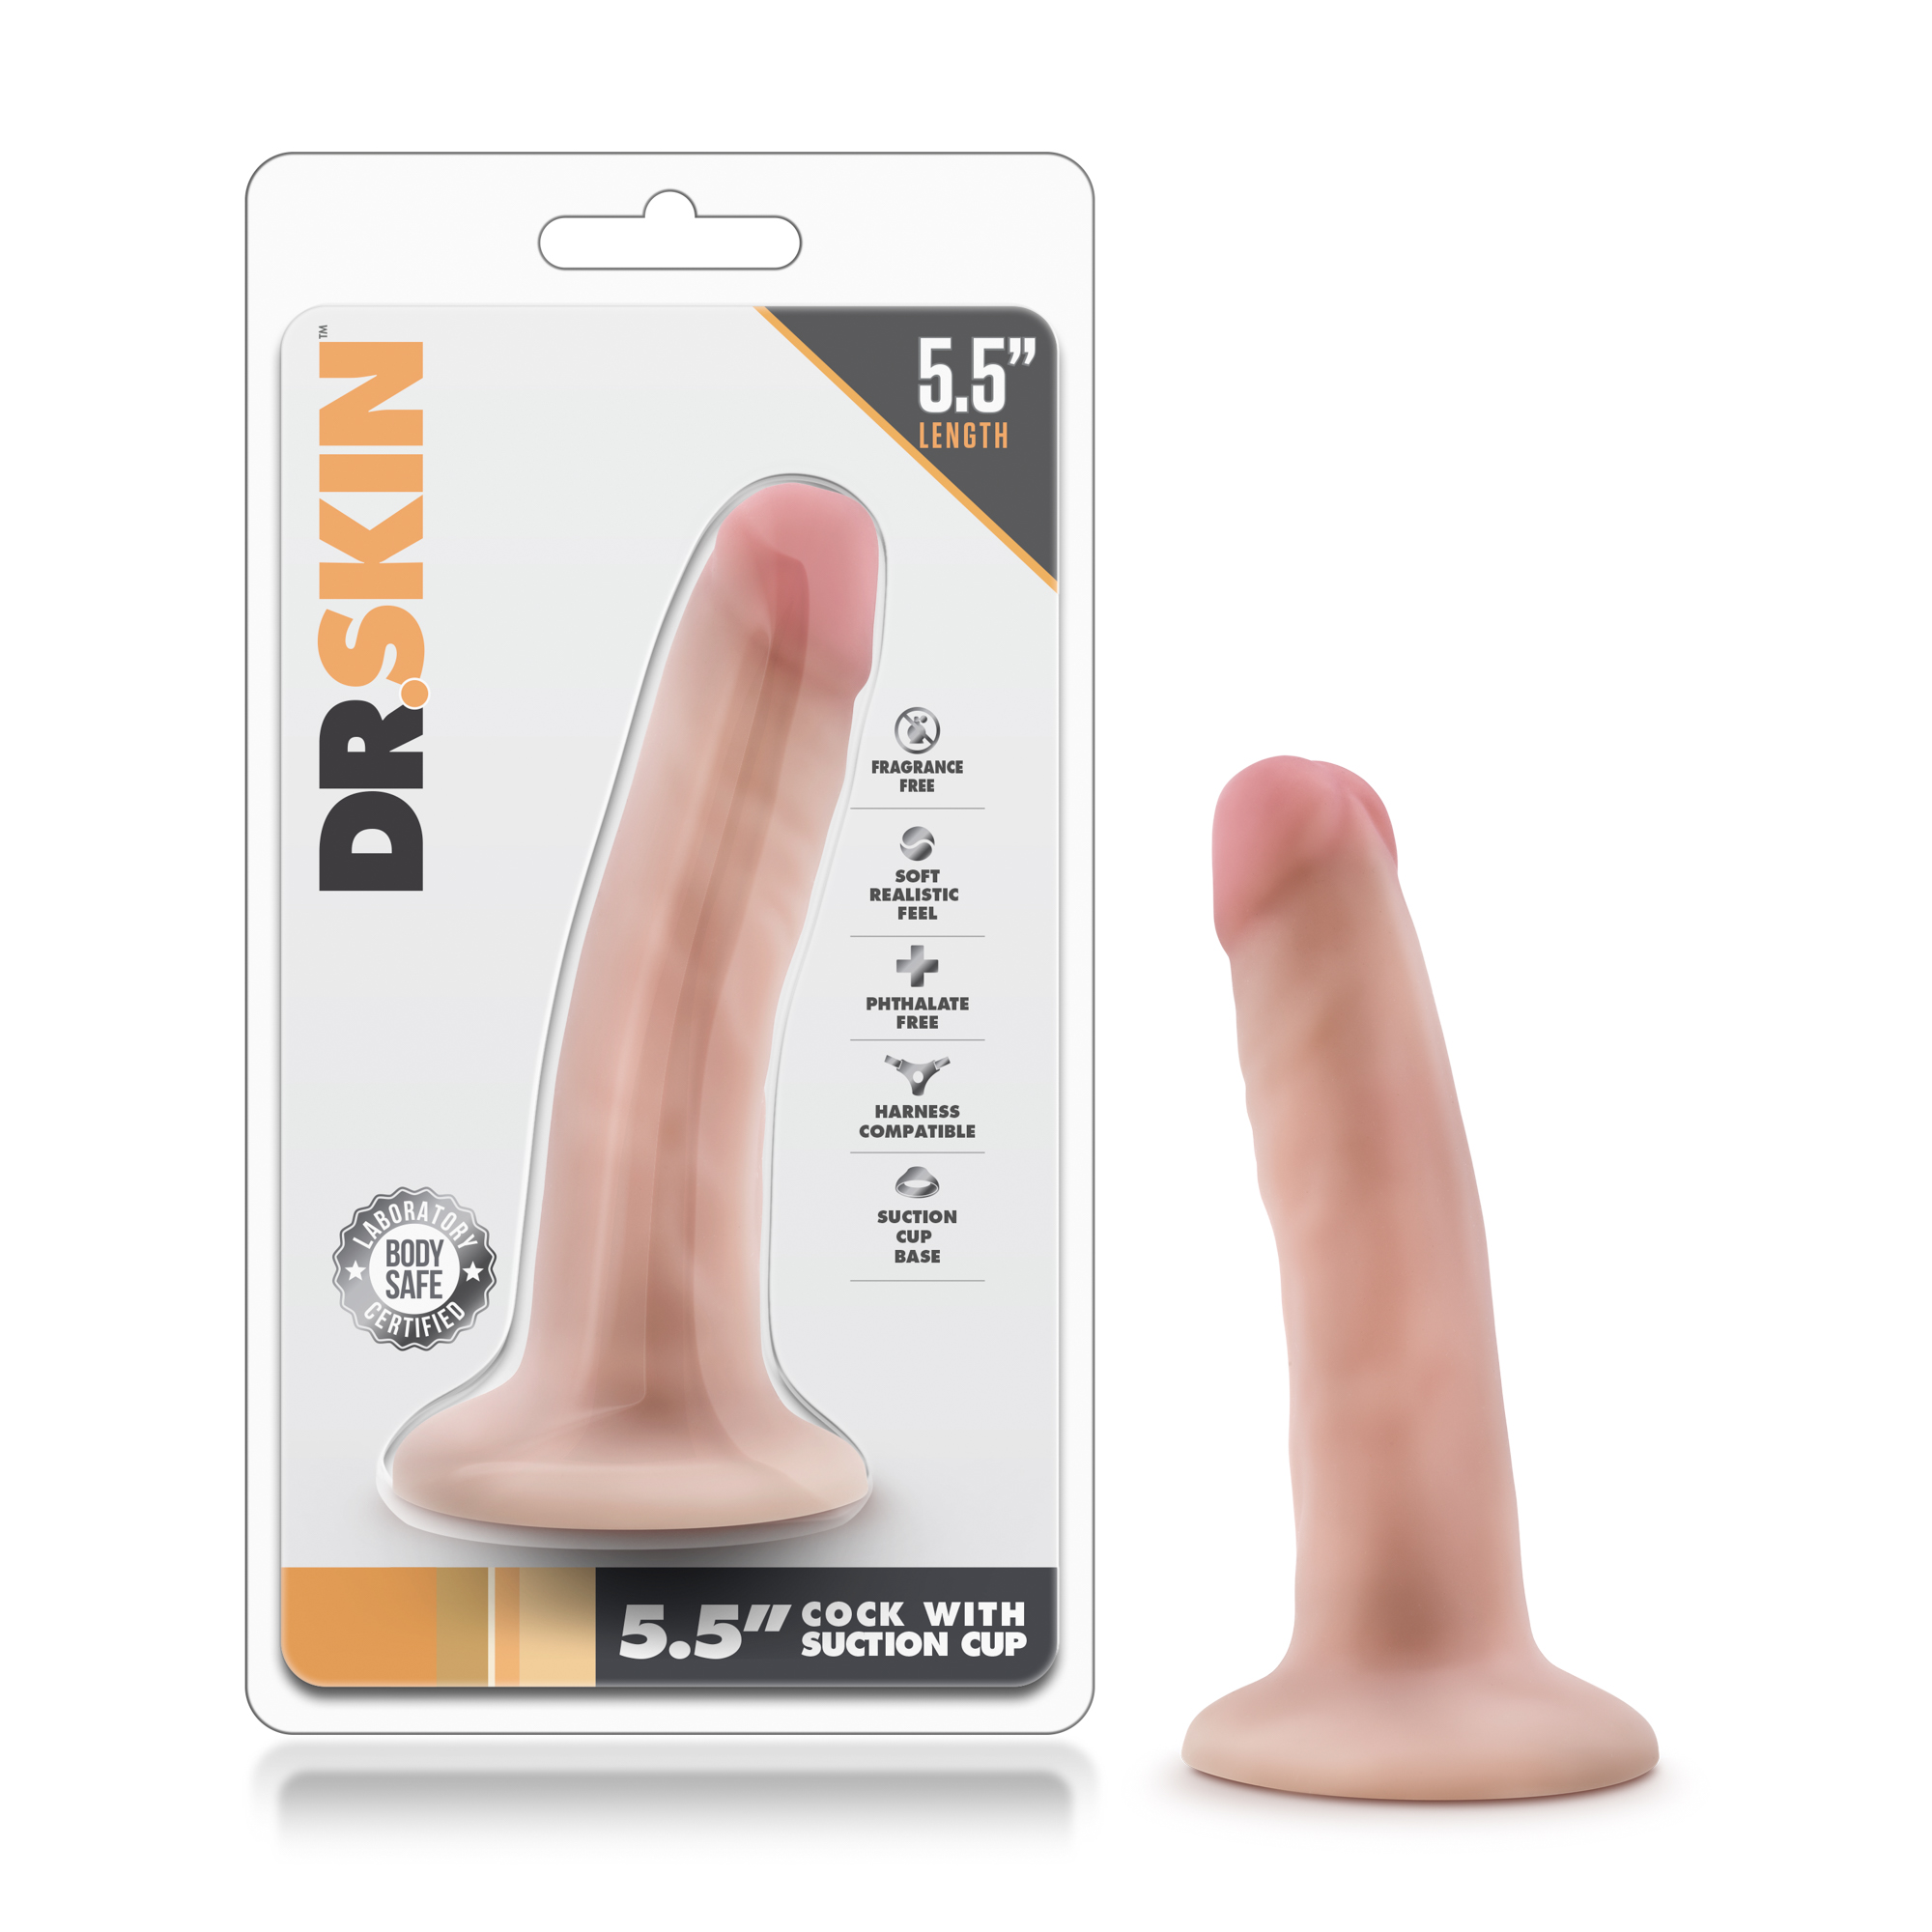 Dr. Skin - 5.5 Inch Cock With Suction Cup - Vanilla